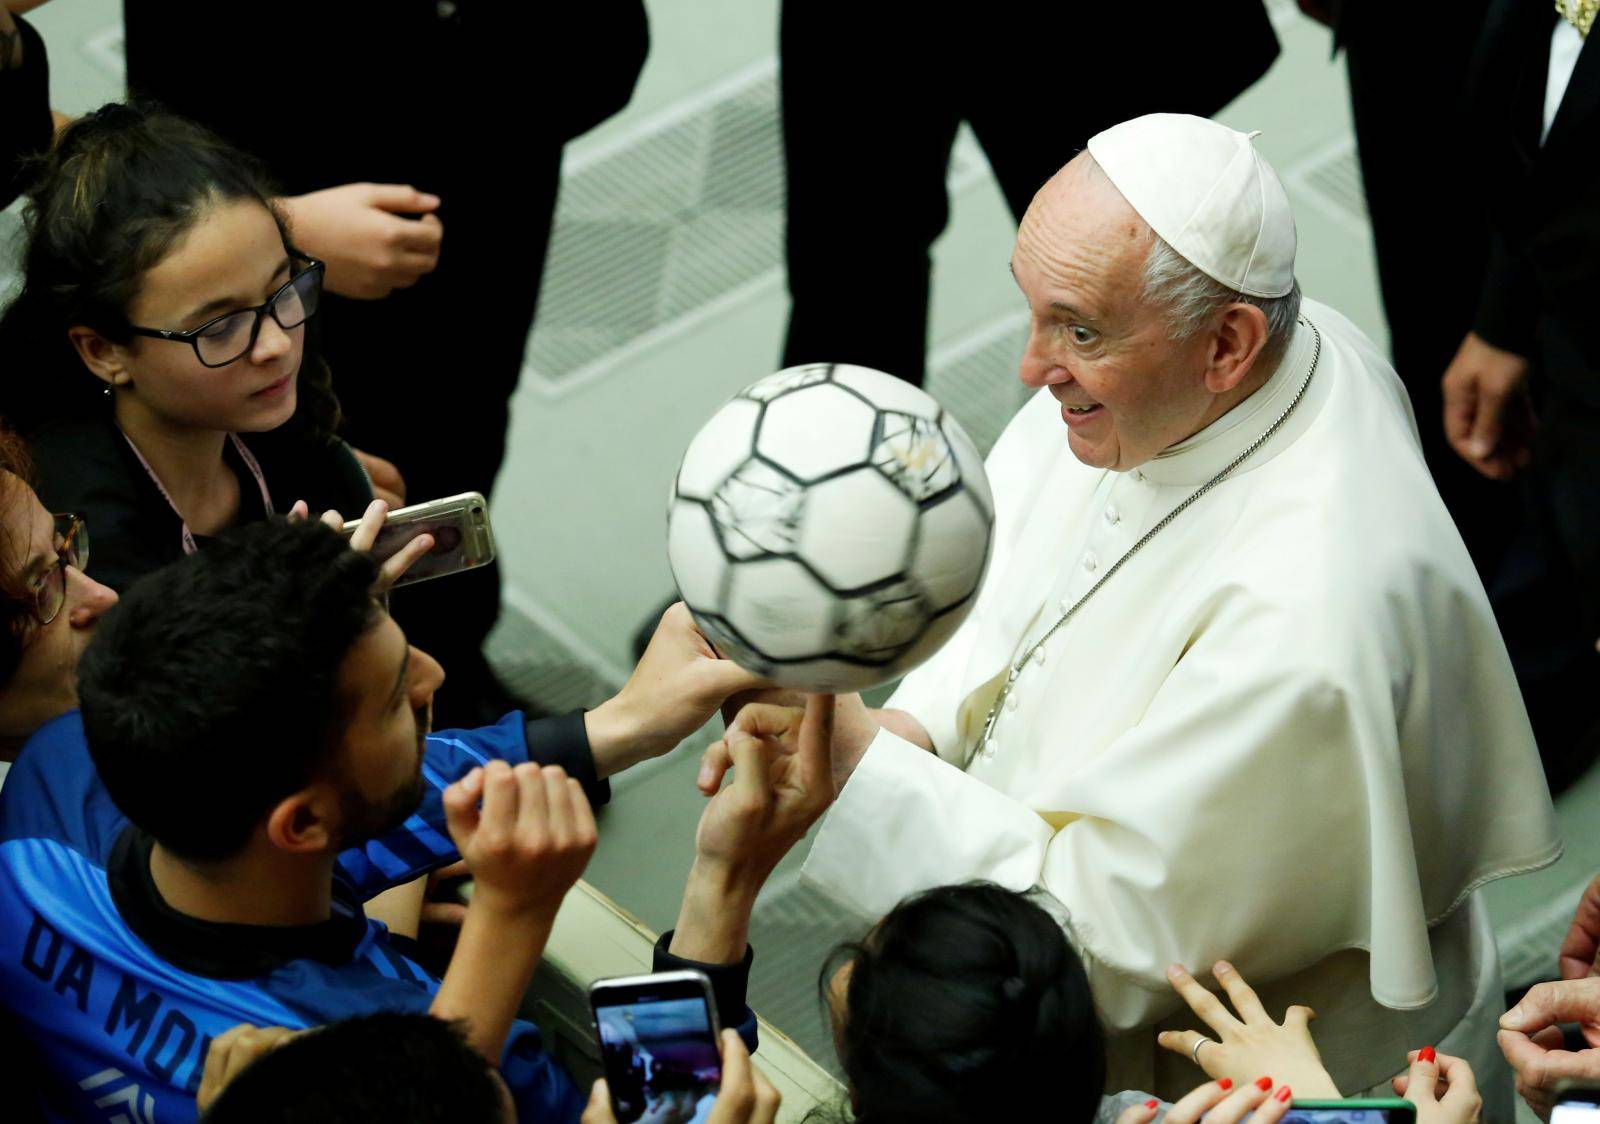 Thousands of soccer-mad kids meet Pope Francis in project to promote sport